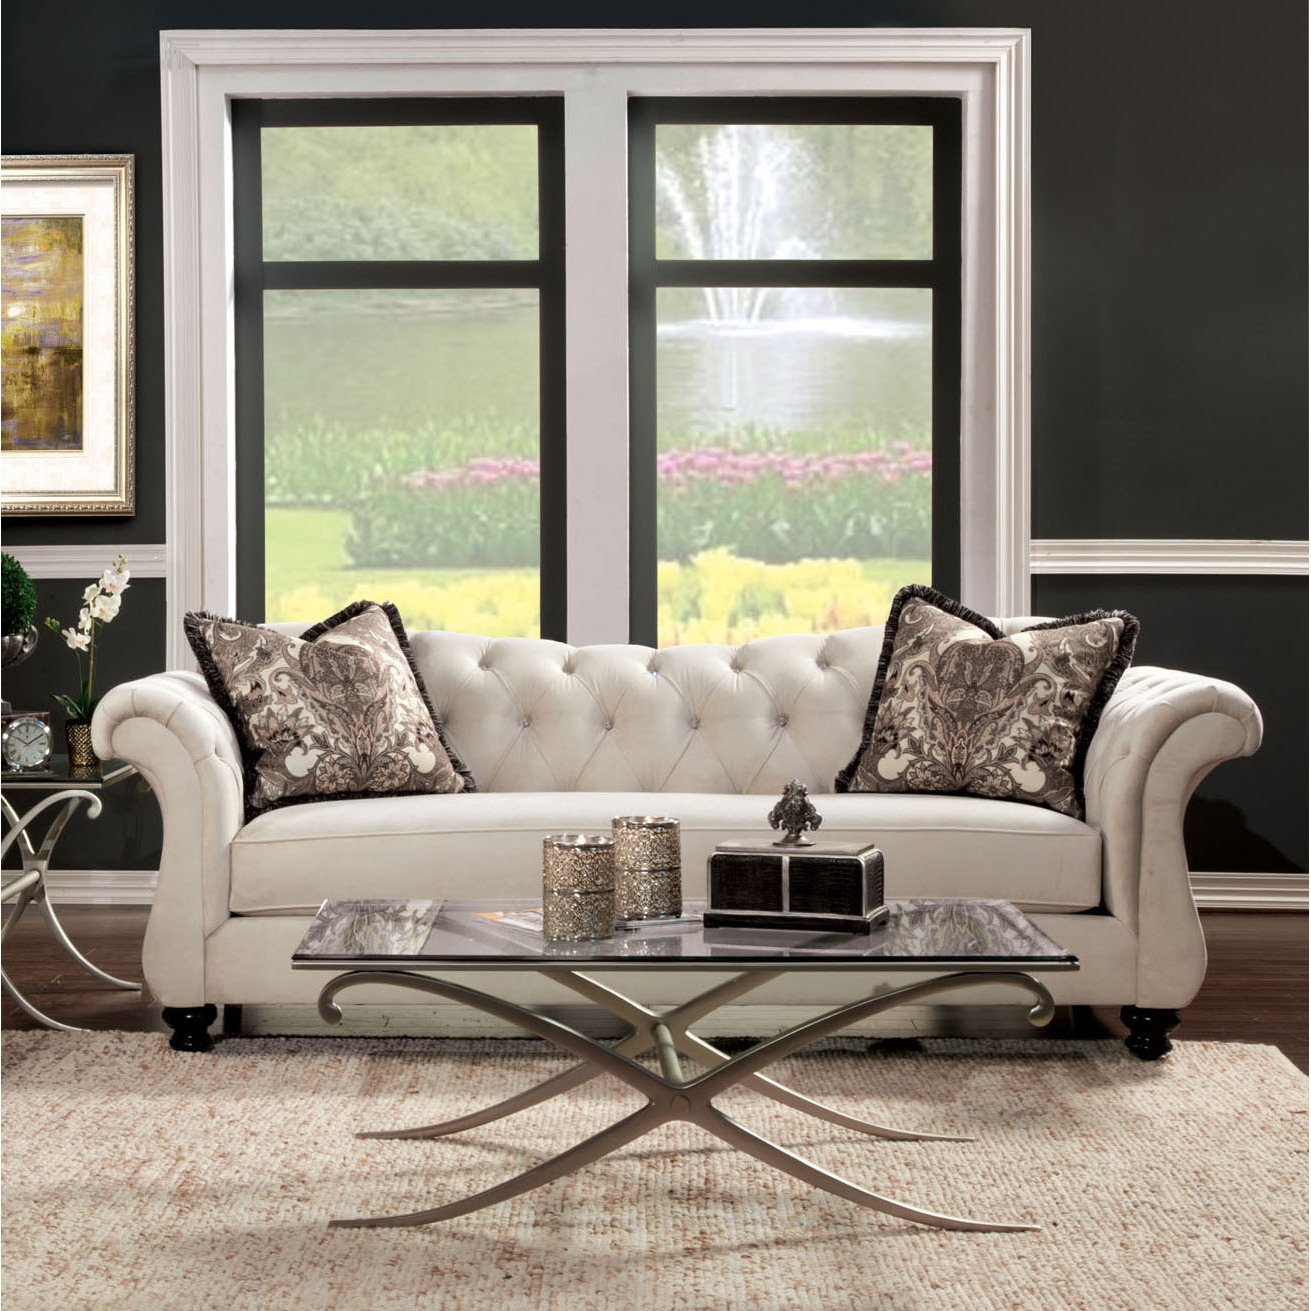 Amazon.com: Metro Shop Furniture Of America Agatha Traditional Tufted Sofa Silver:  Kitchen U0026 Dining